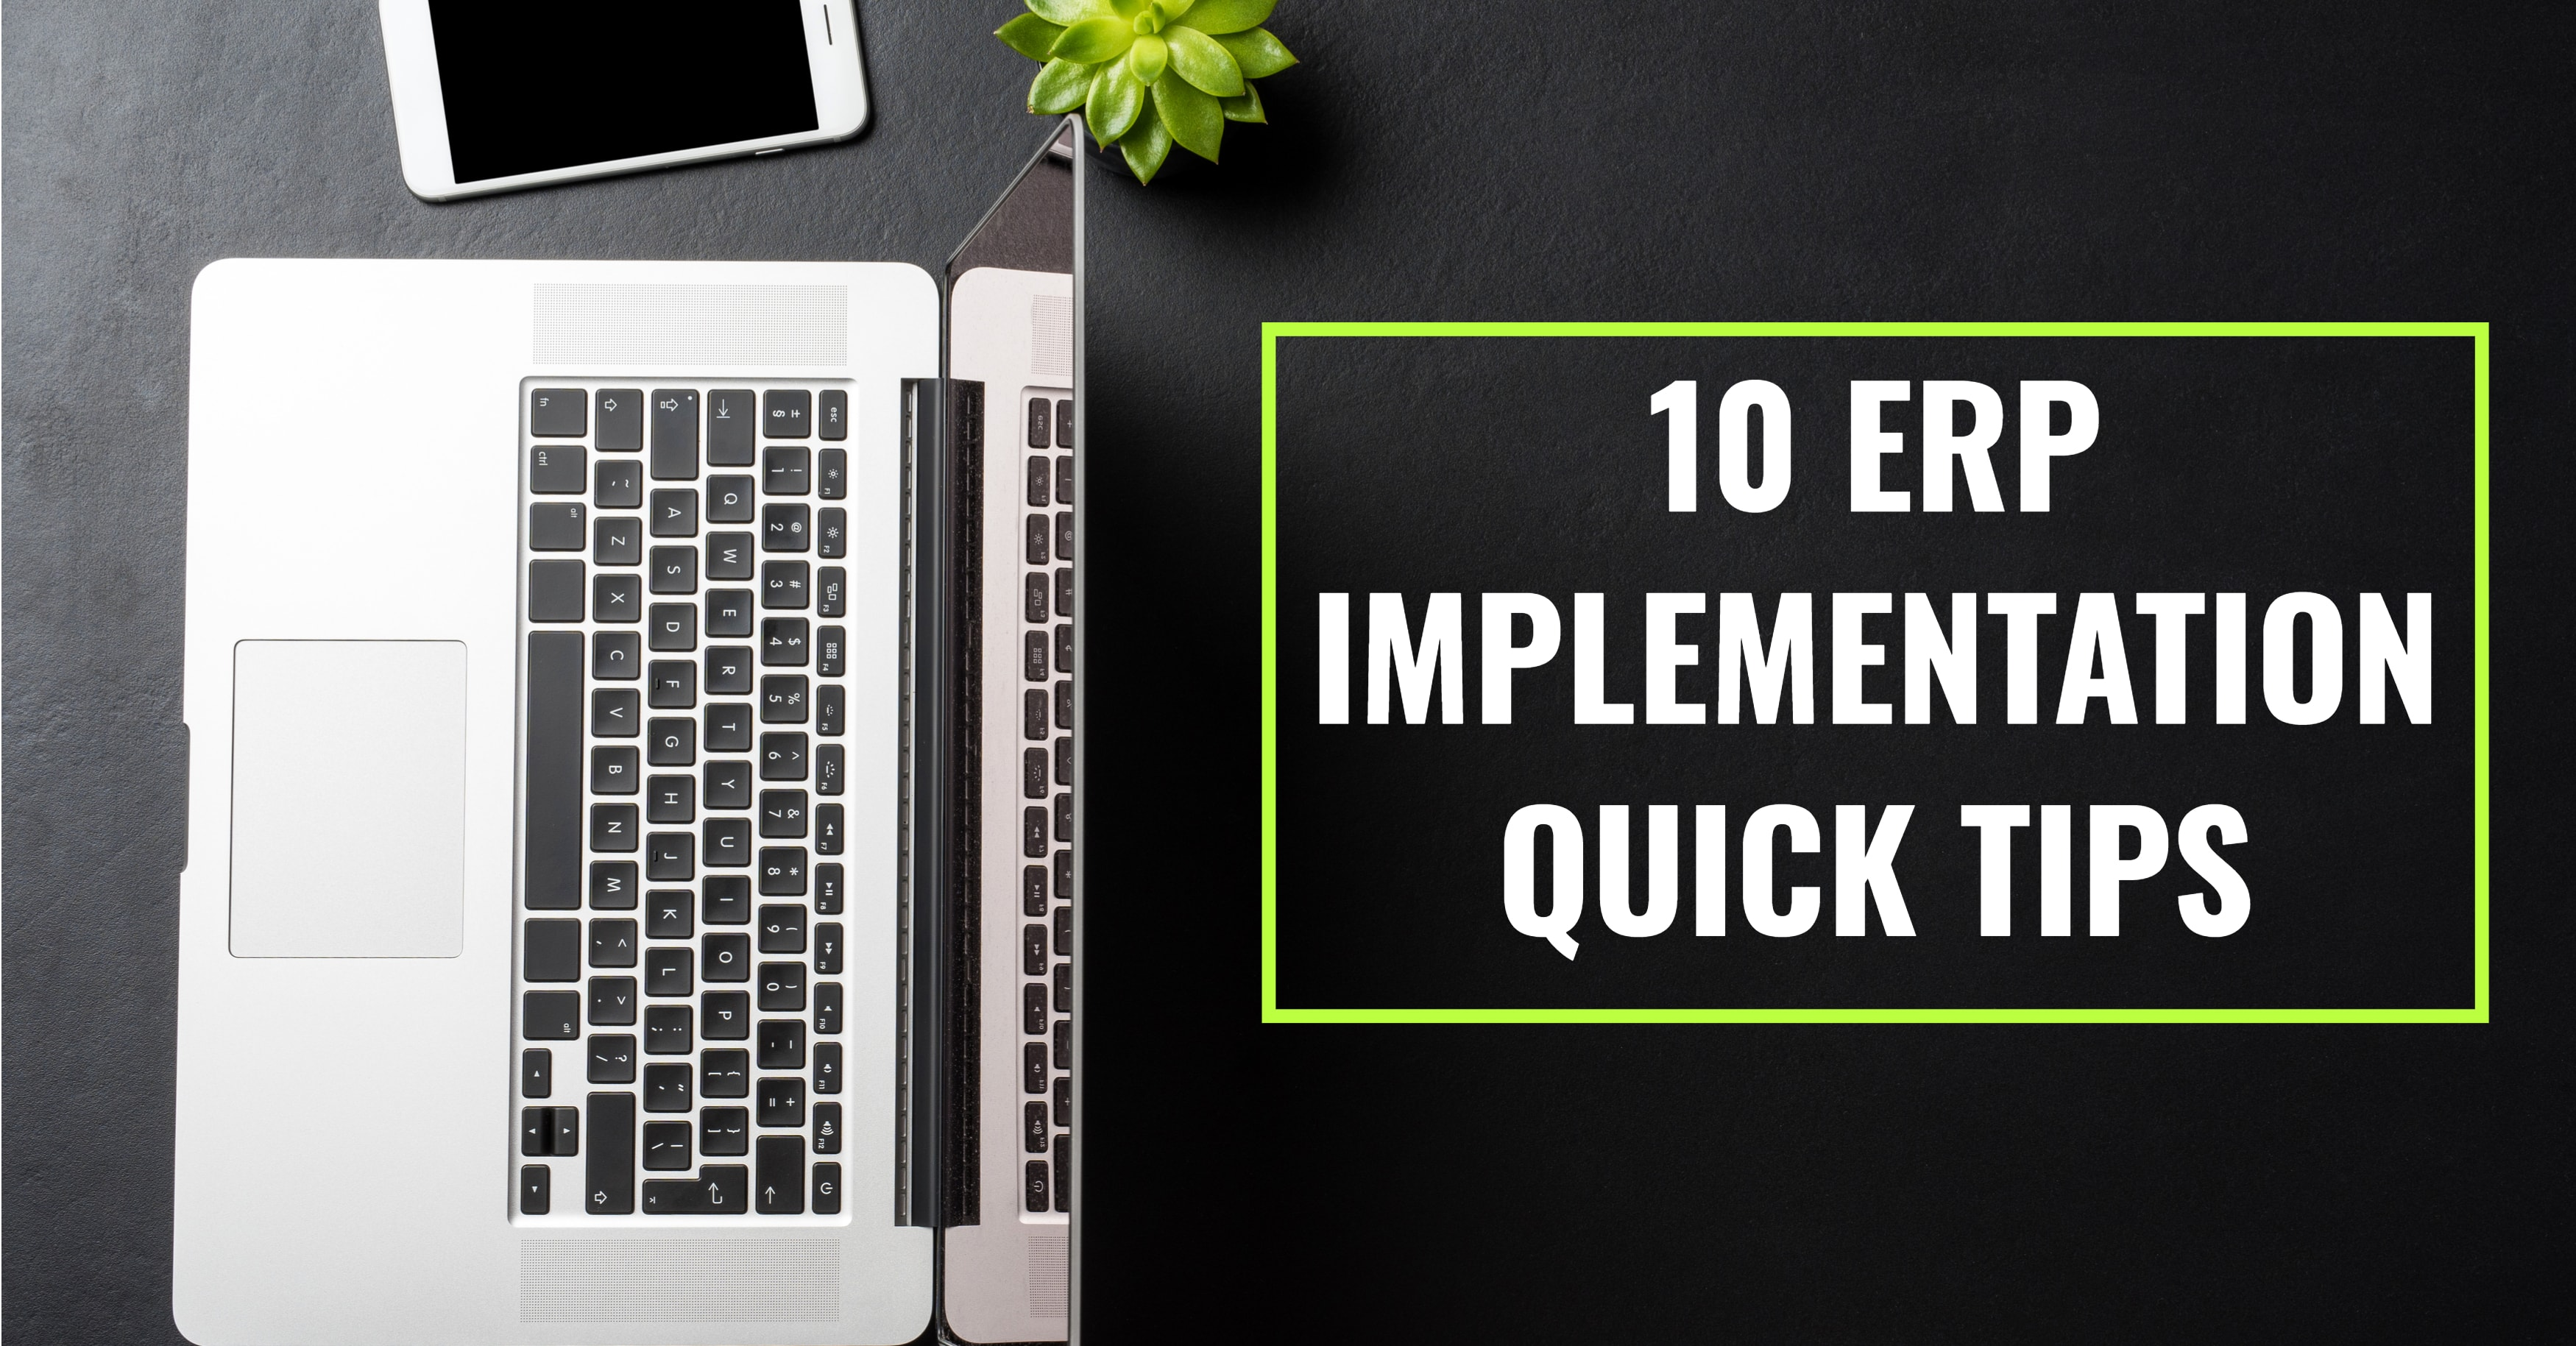 ERP Implementation Quick Tips